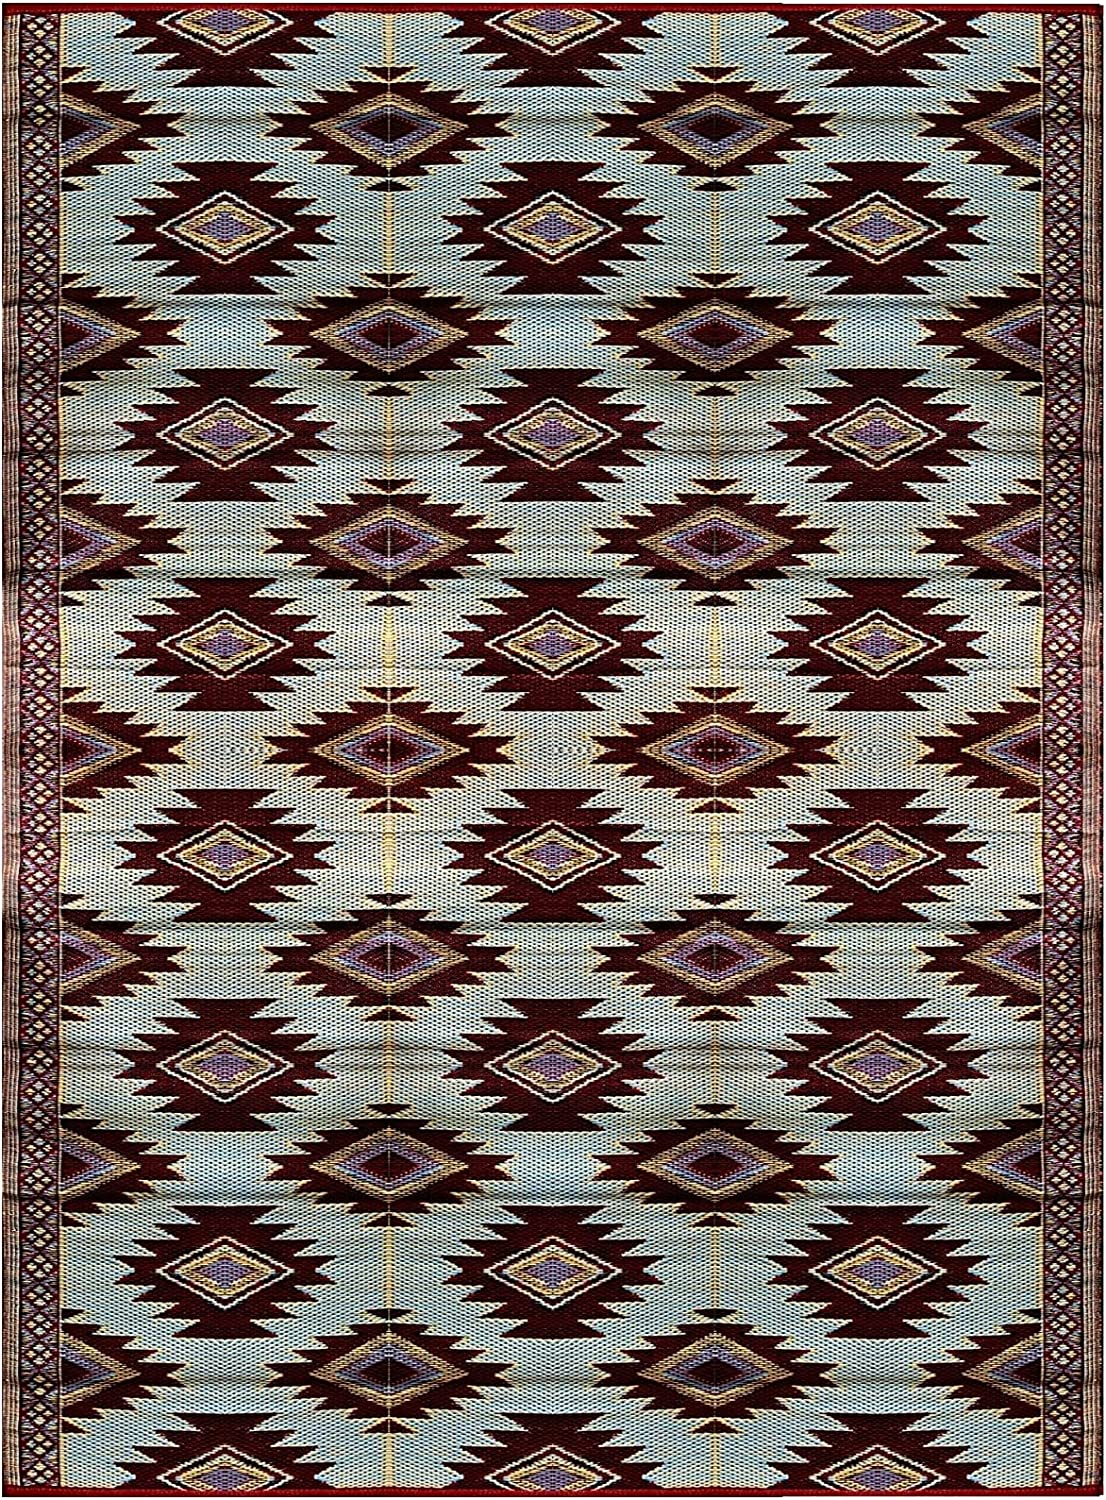 BalajeesUSA Max 69% OFF Outdoor Patio Rugs clearance 274 cm 9'x12' Over item handling 365 x